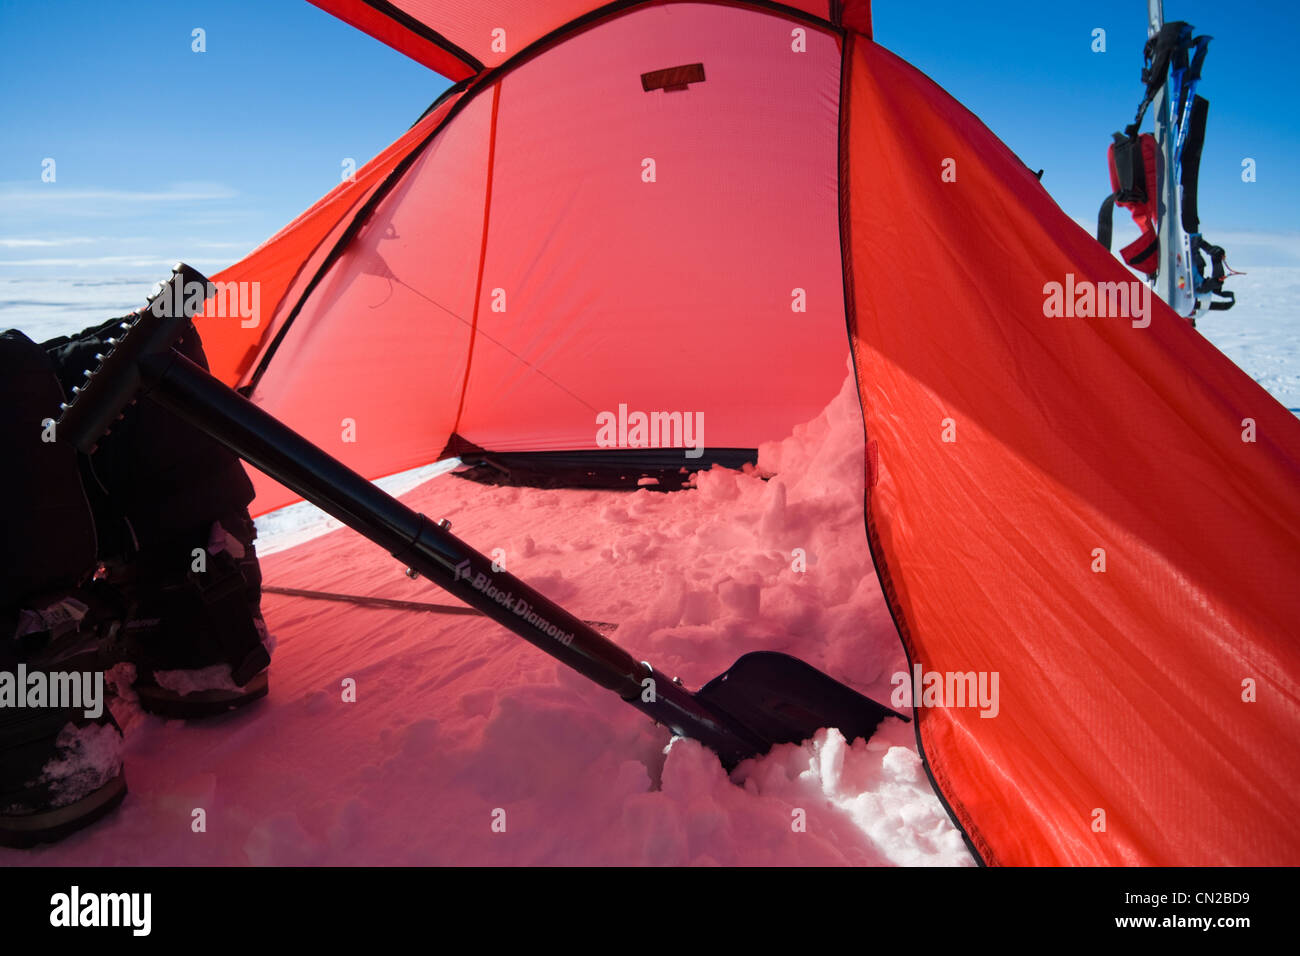 Polar expedition tent on ice cap Greenland - Stock Image & Polar Expedition Tents Tent Stock Photos u0026 Polar Expedition Tents ...